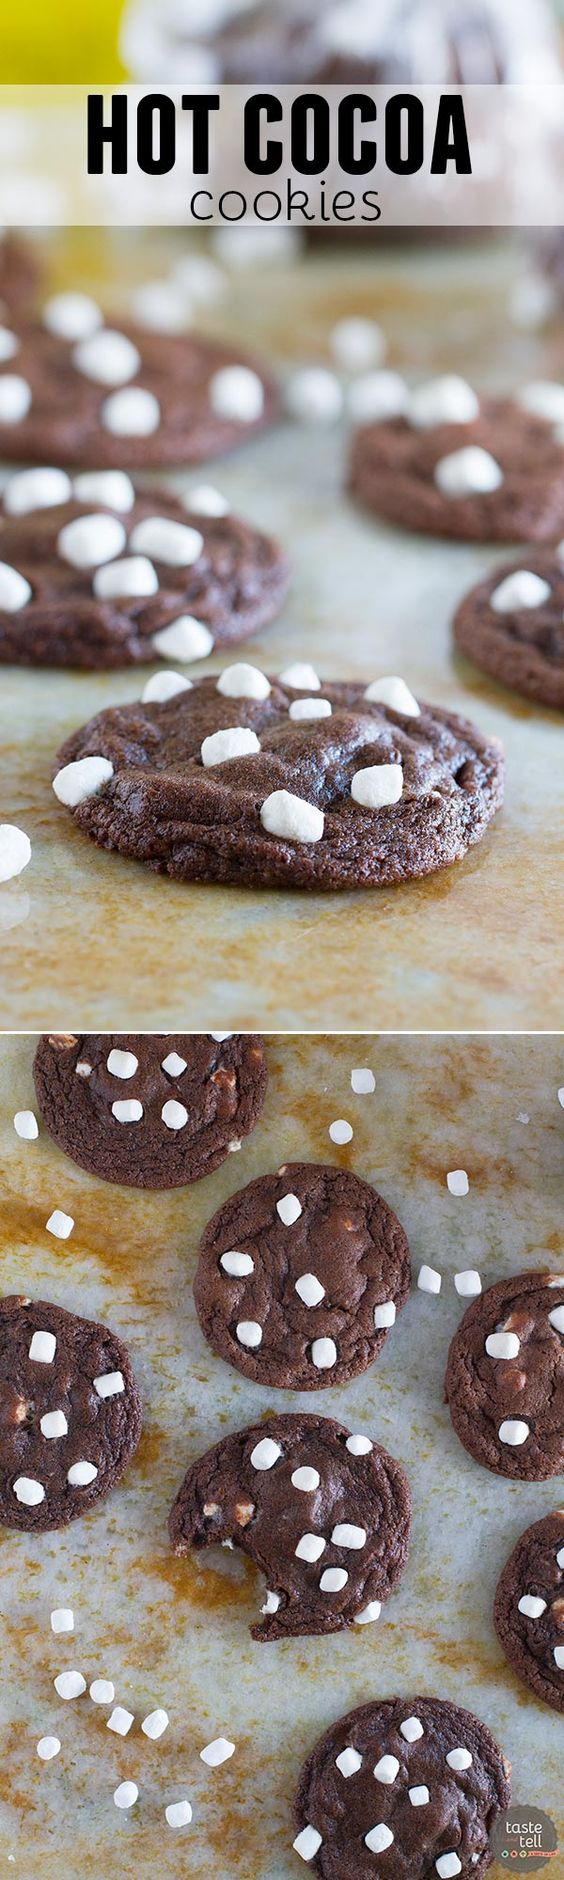 Hot Cocoa Cookies | Recipe | Cocoa Cookies, Cocoa and Mini ...